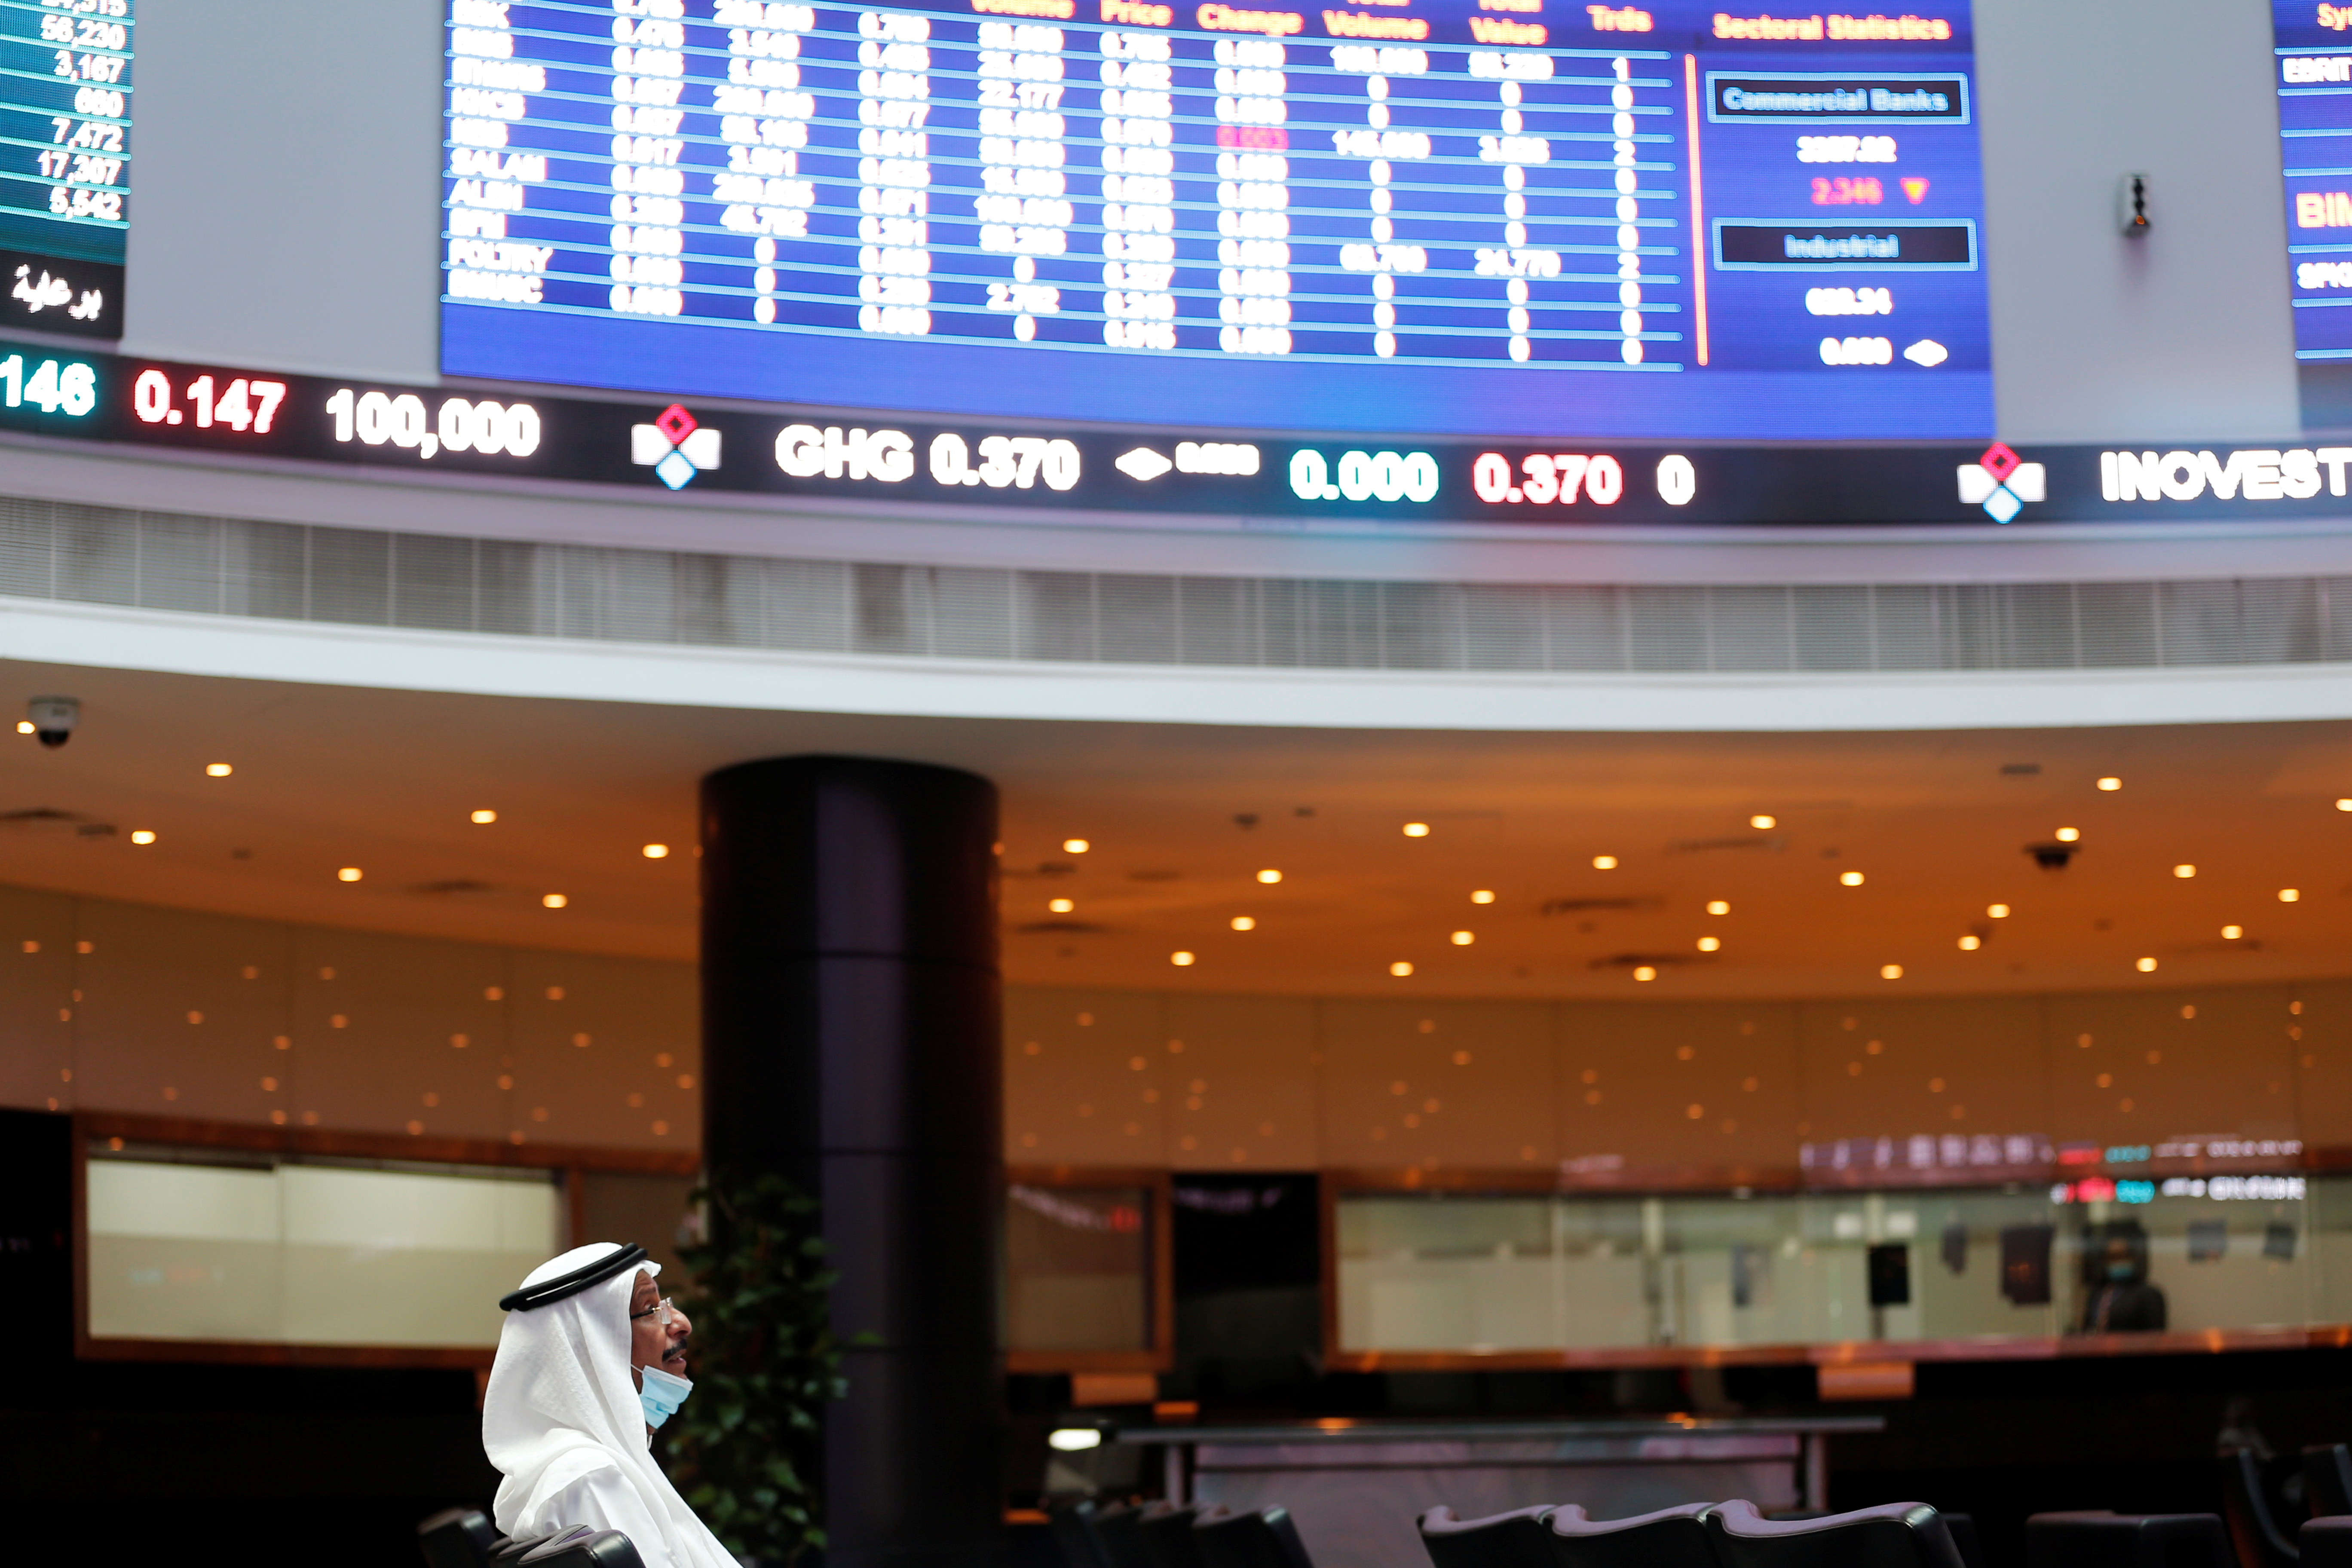 A trader looks on near electronic boards showing stock market data at Bahrain Bourse after Joe Biden won the U.S. presidency, in Manama, Bahrain, November 8, 2020. REUTERS/Hamad I Mohammed